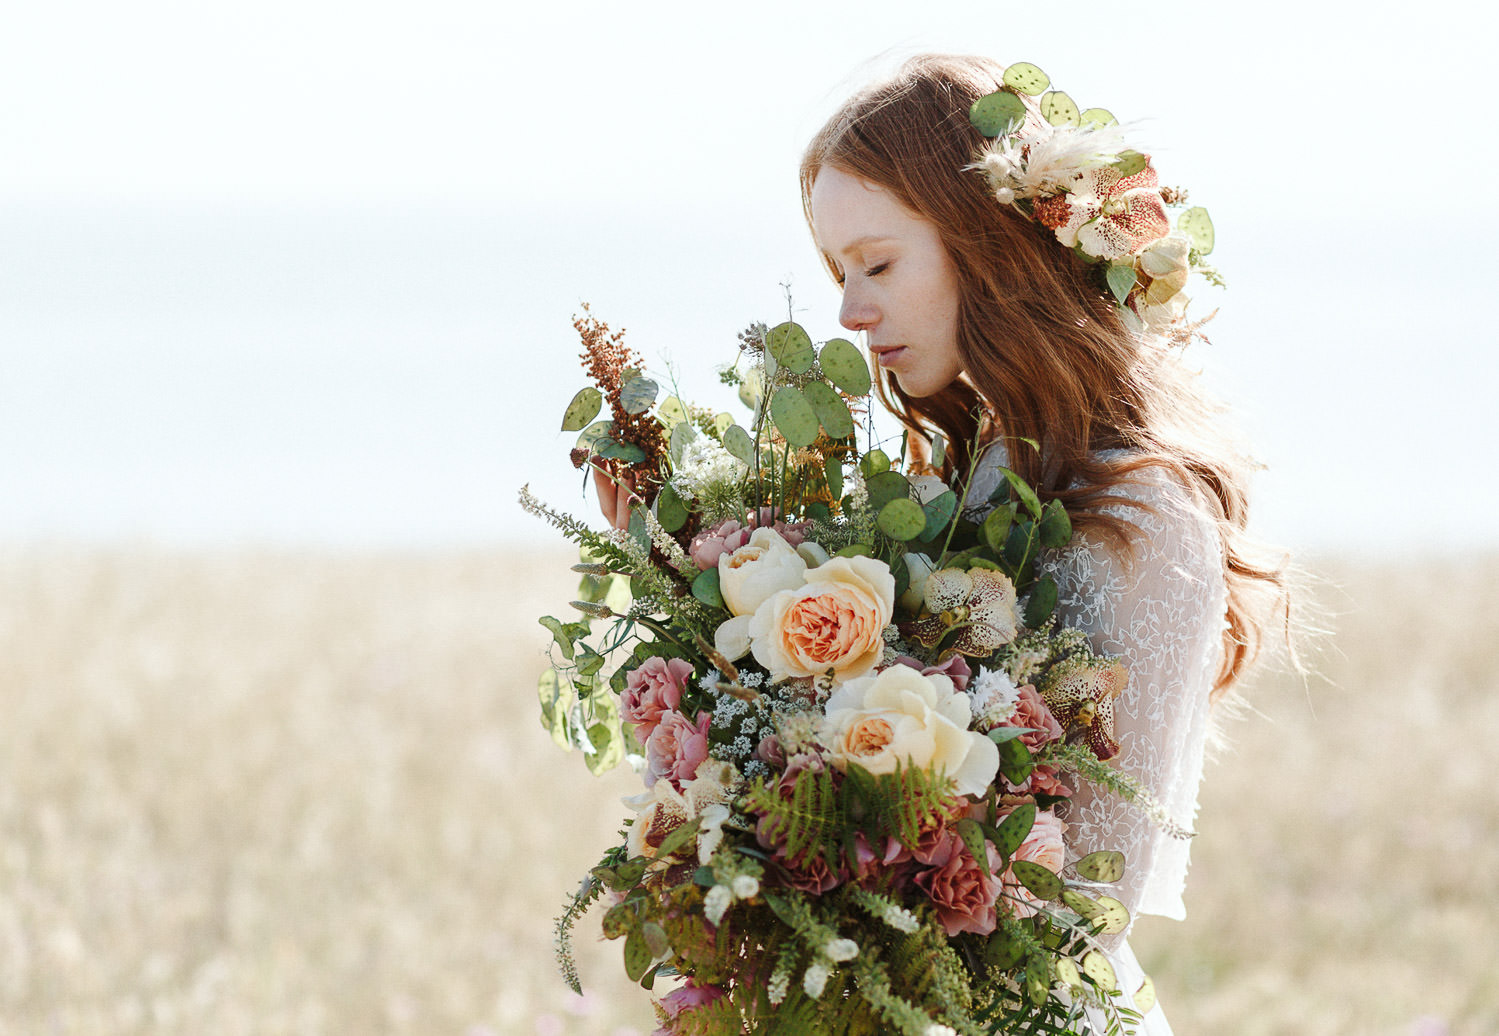 Gorgeous wedding bouquet with lush greenery and florals by Chiara Sperti - Photo: Camilla Anchisi